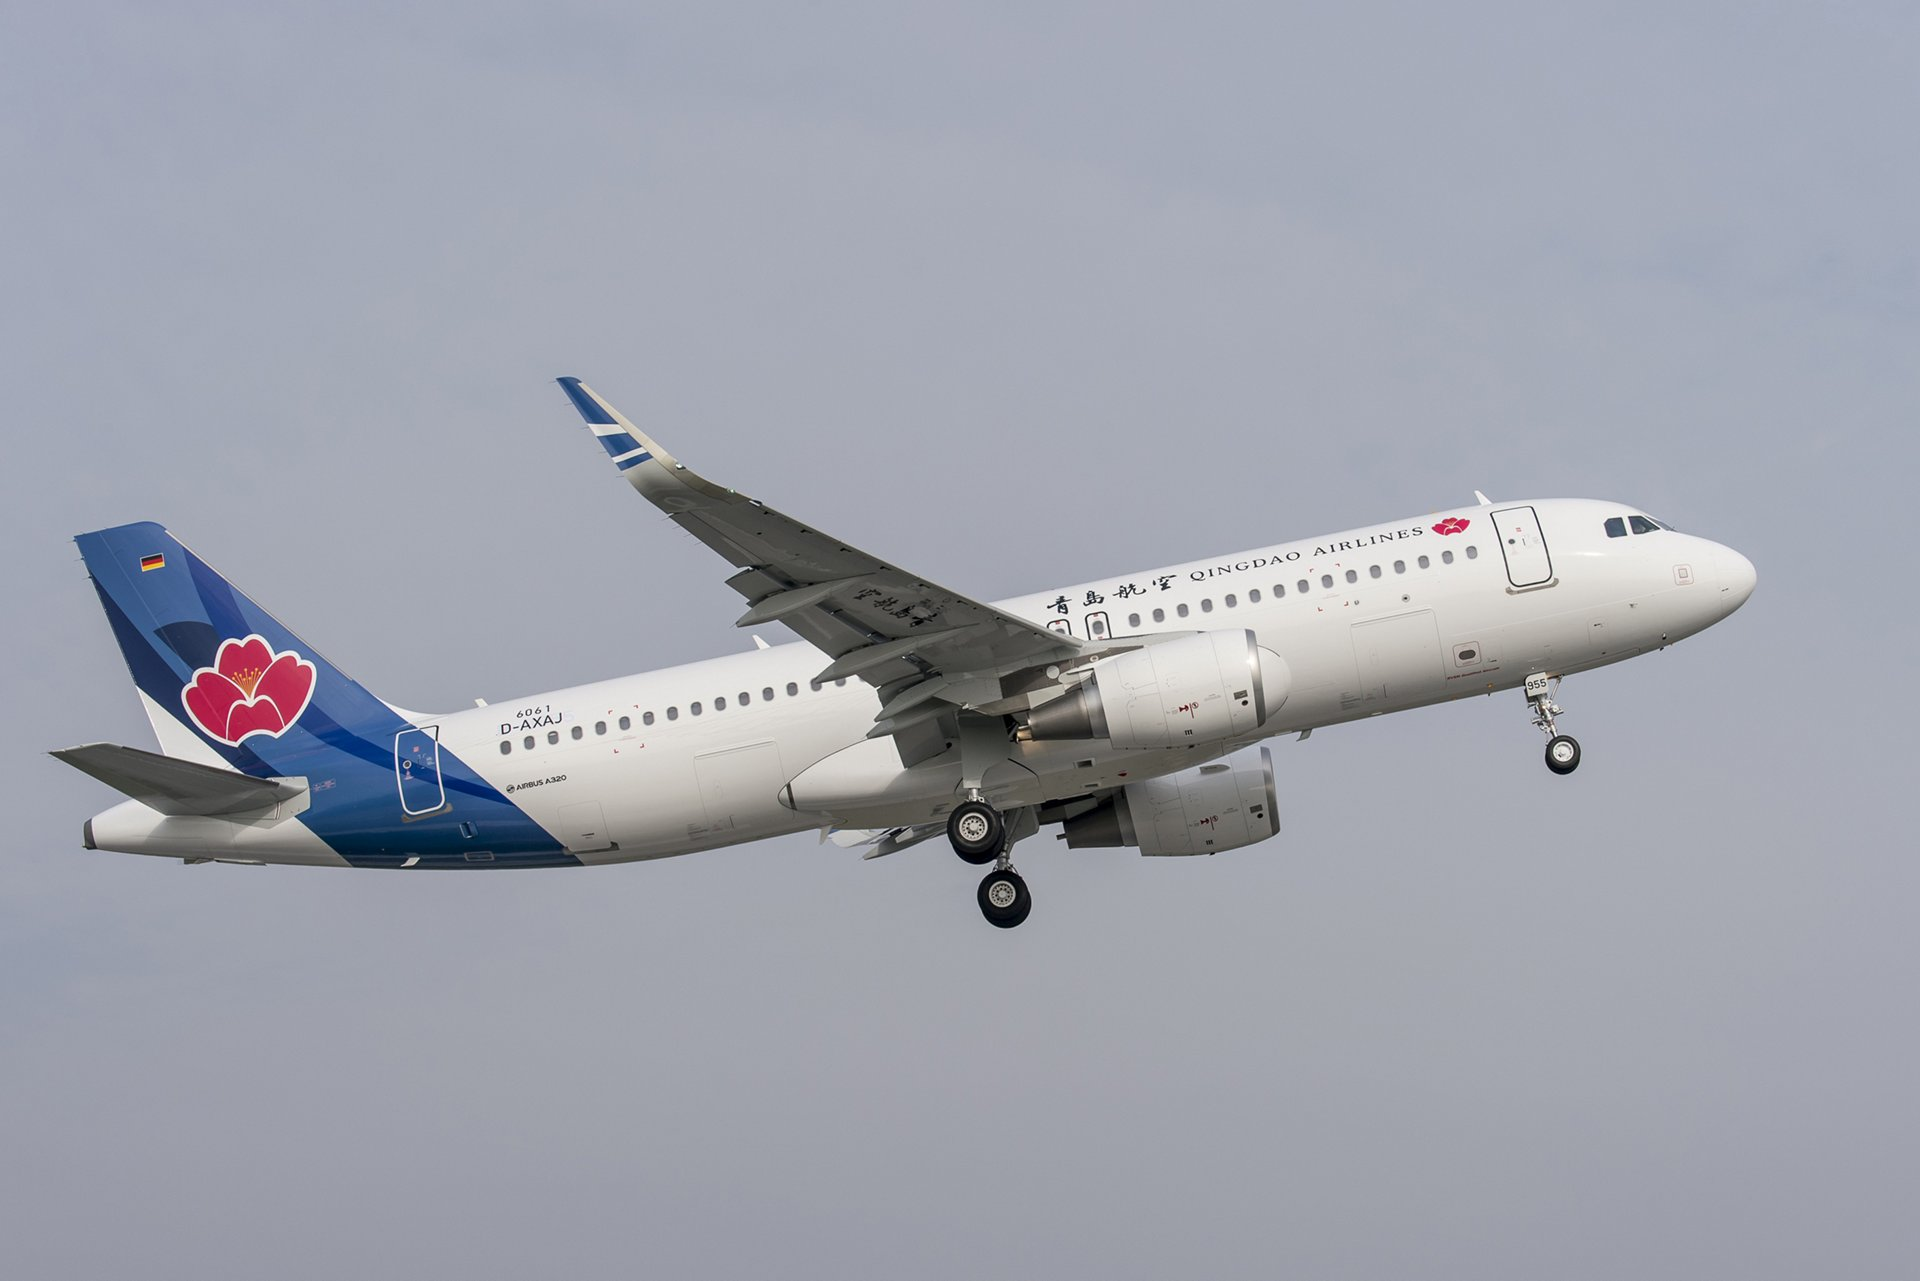 Qingdao Airlines A320